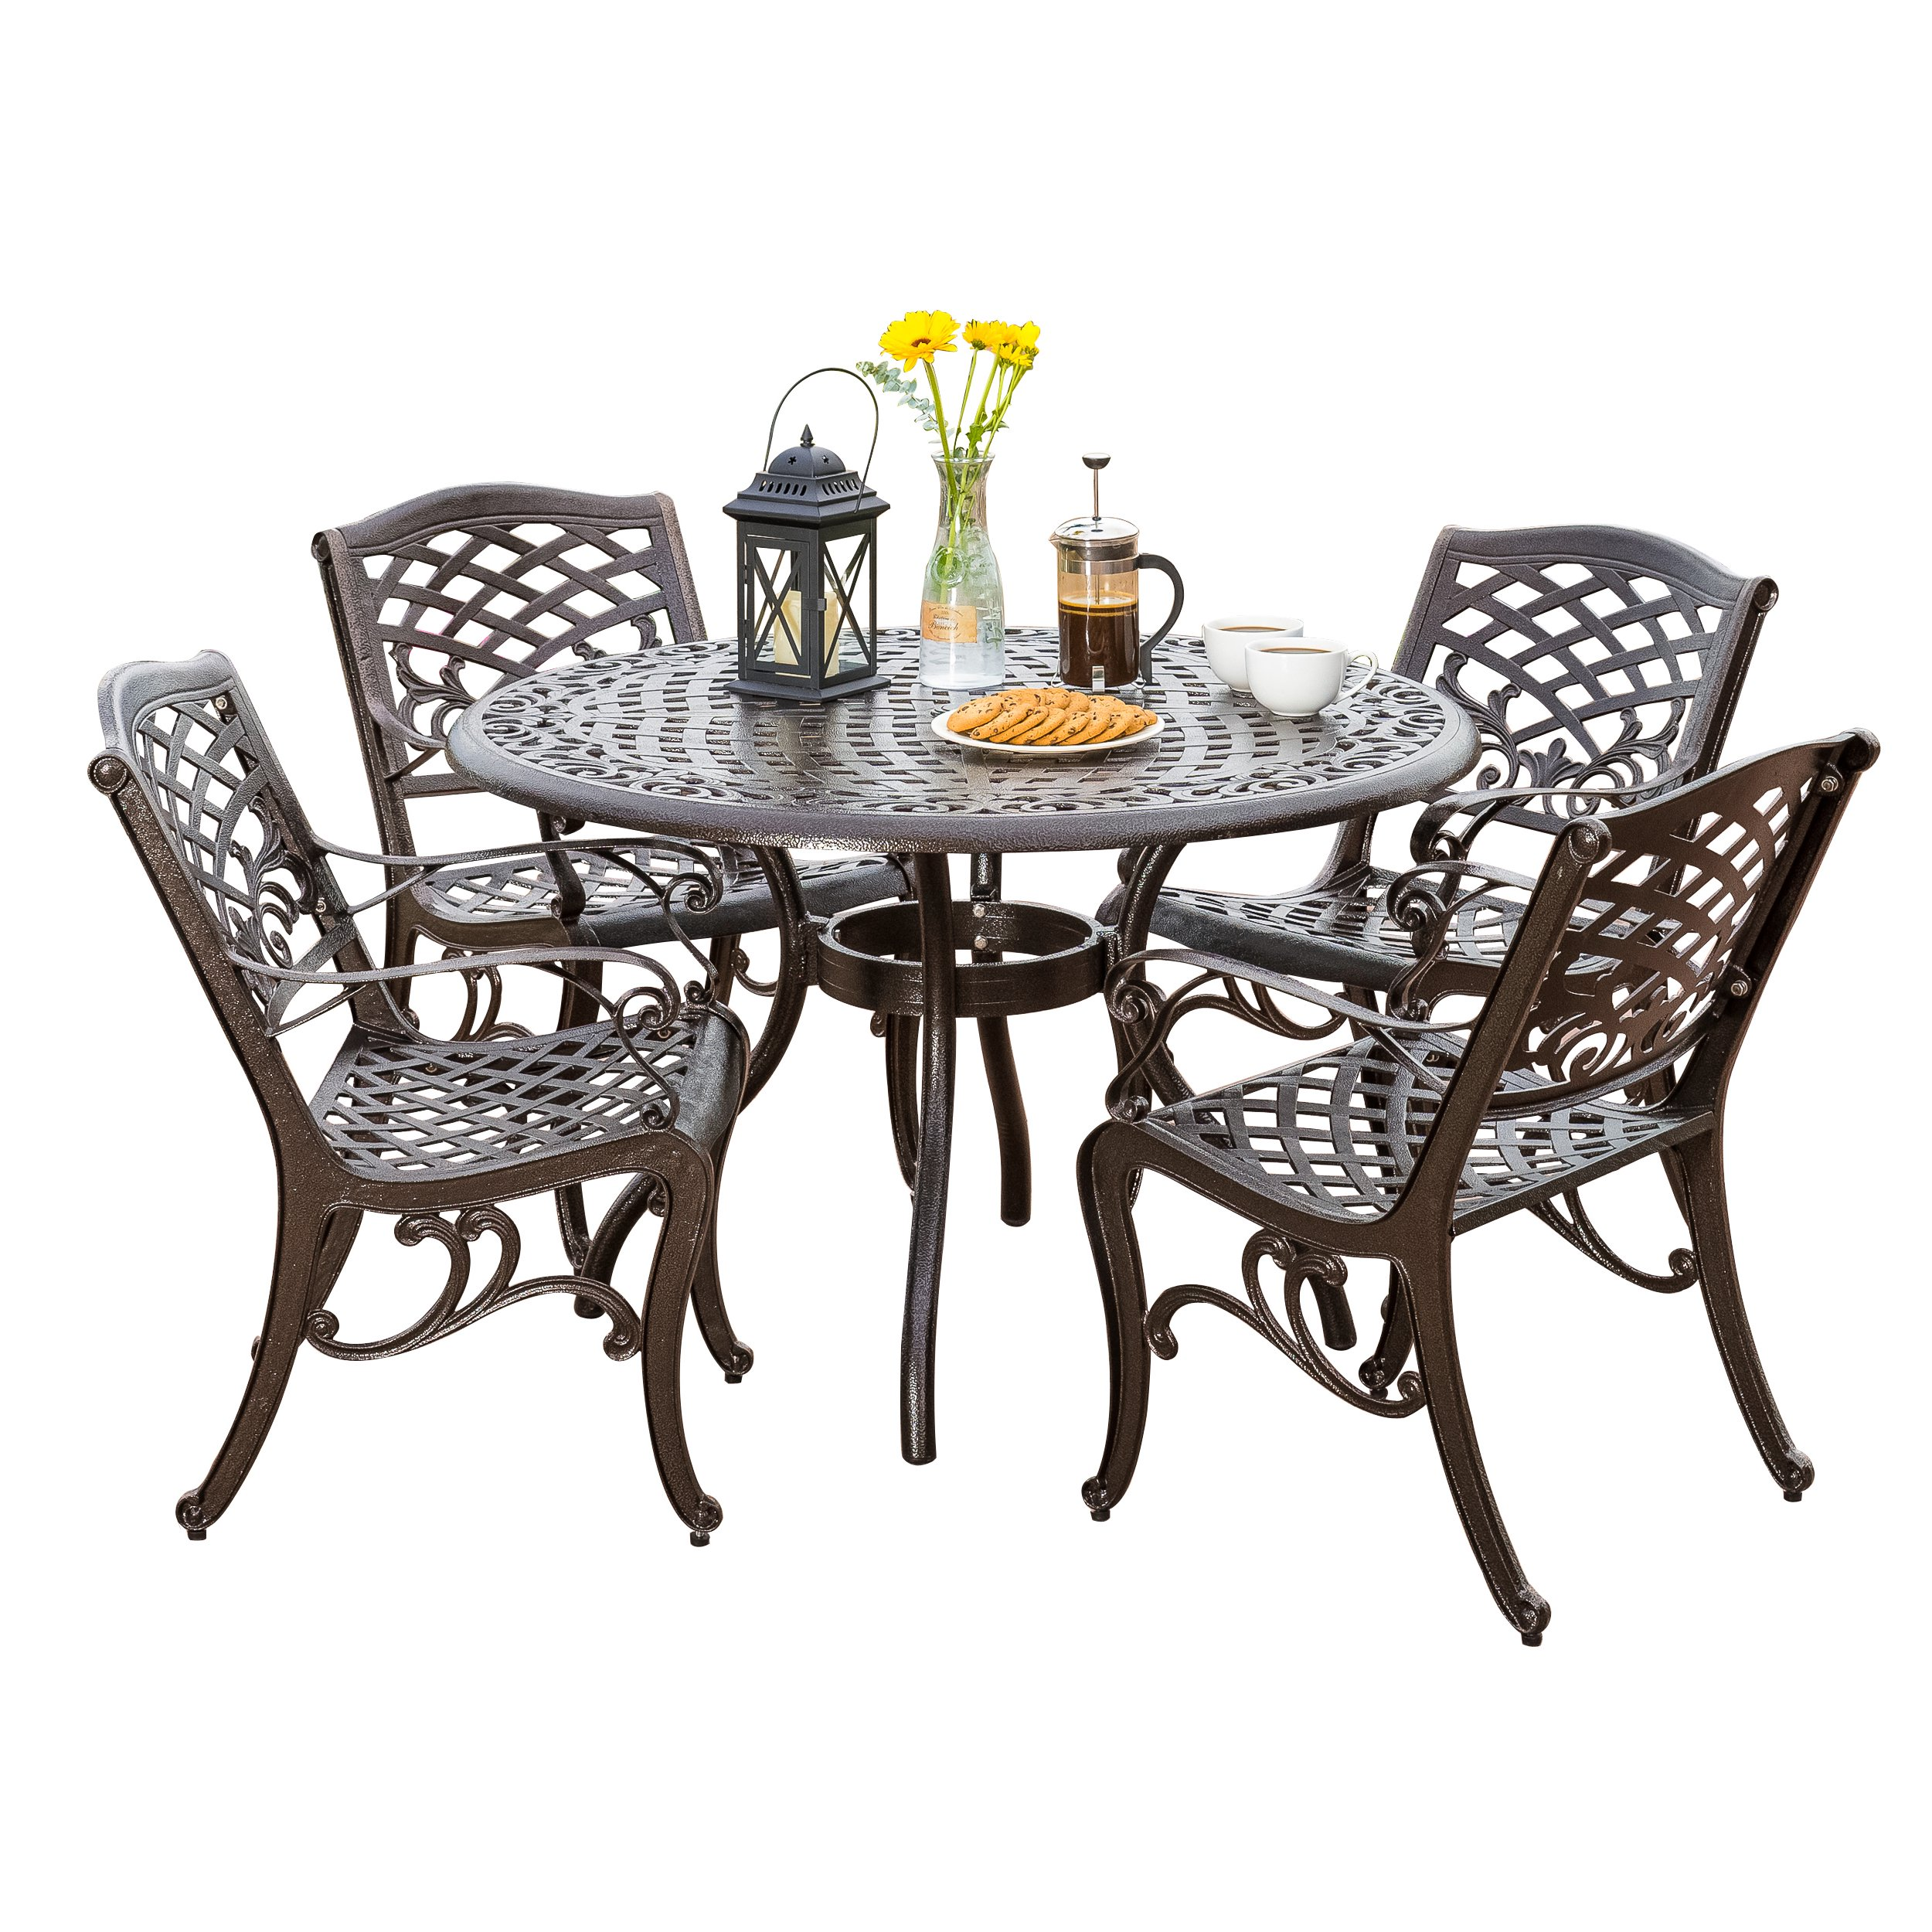 Noble House Bronze 5 Piece Cast Aluminum Bronze Outdoor Dining Set